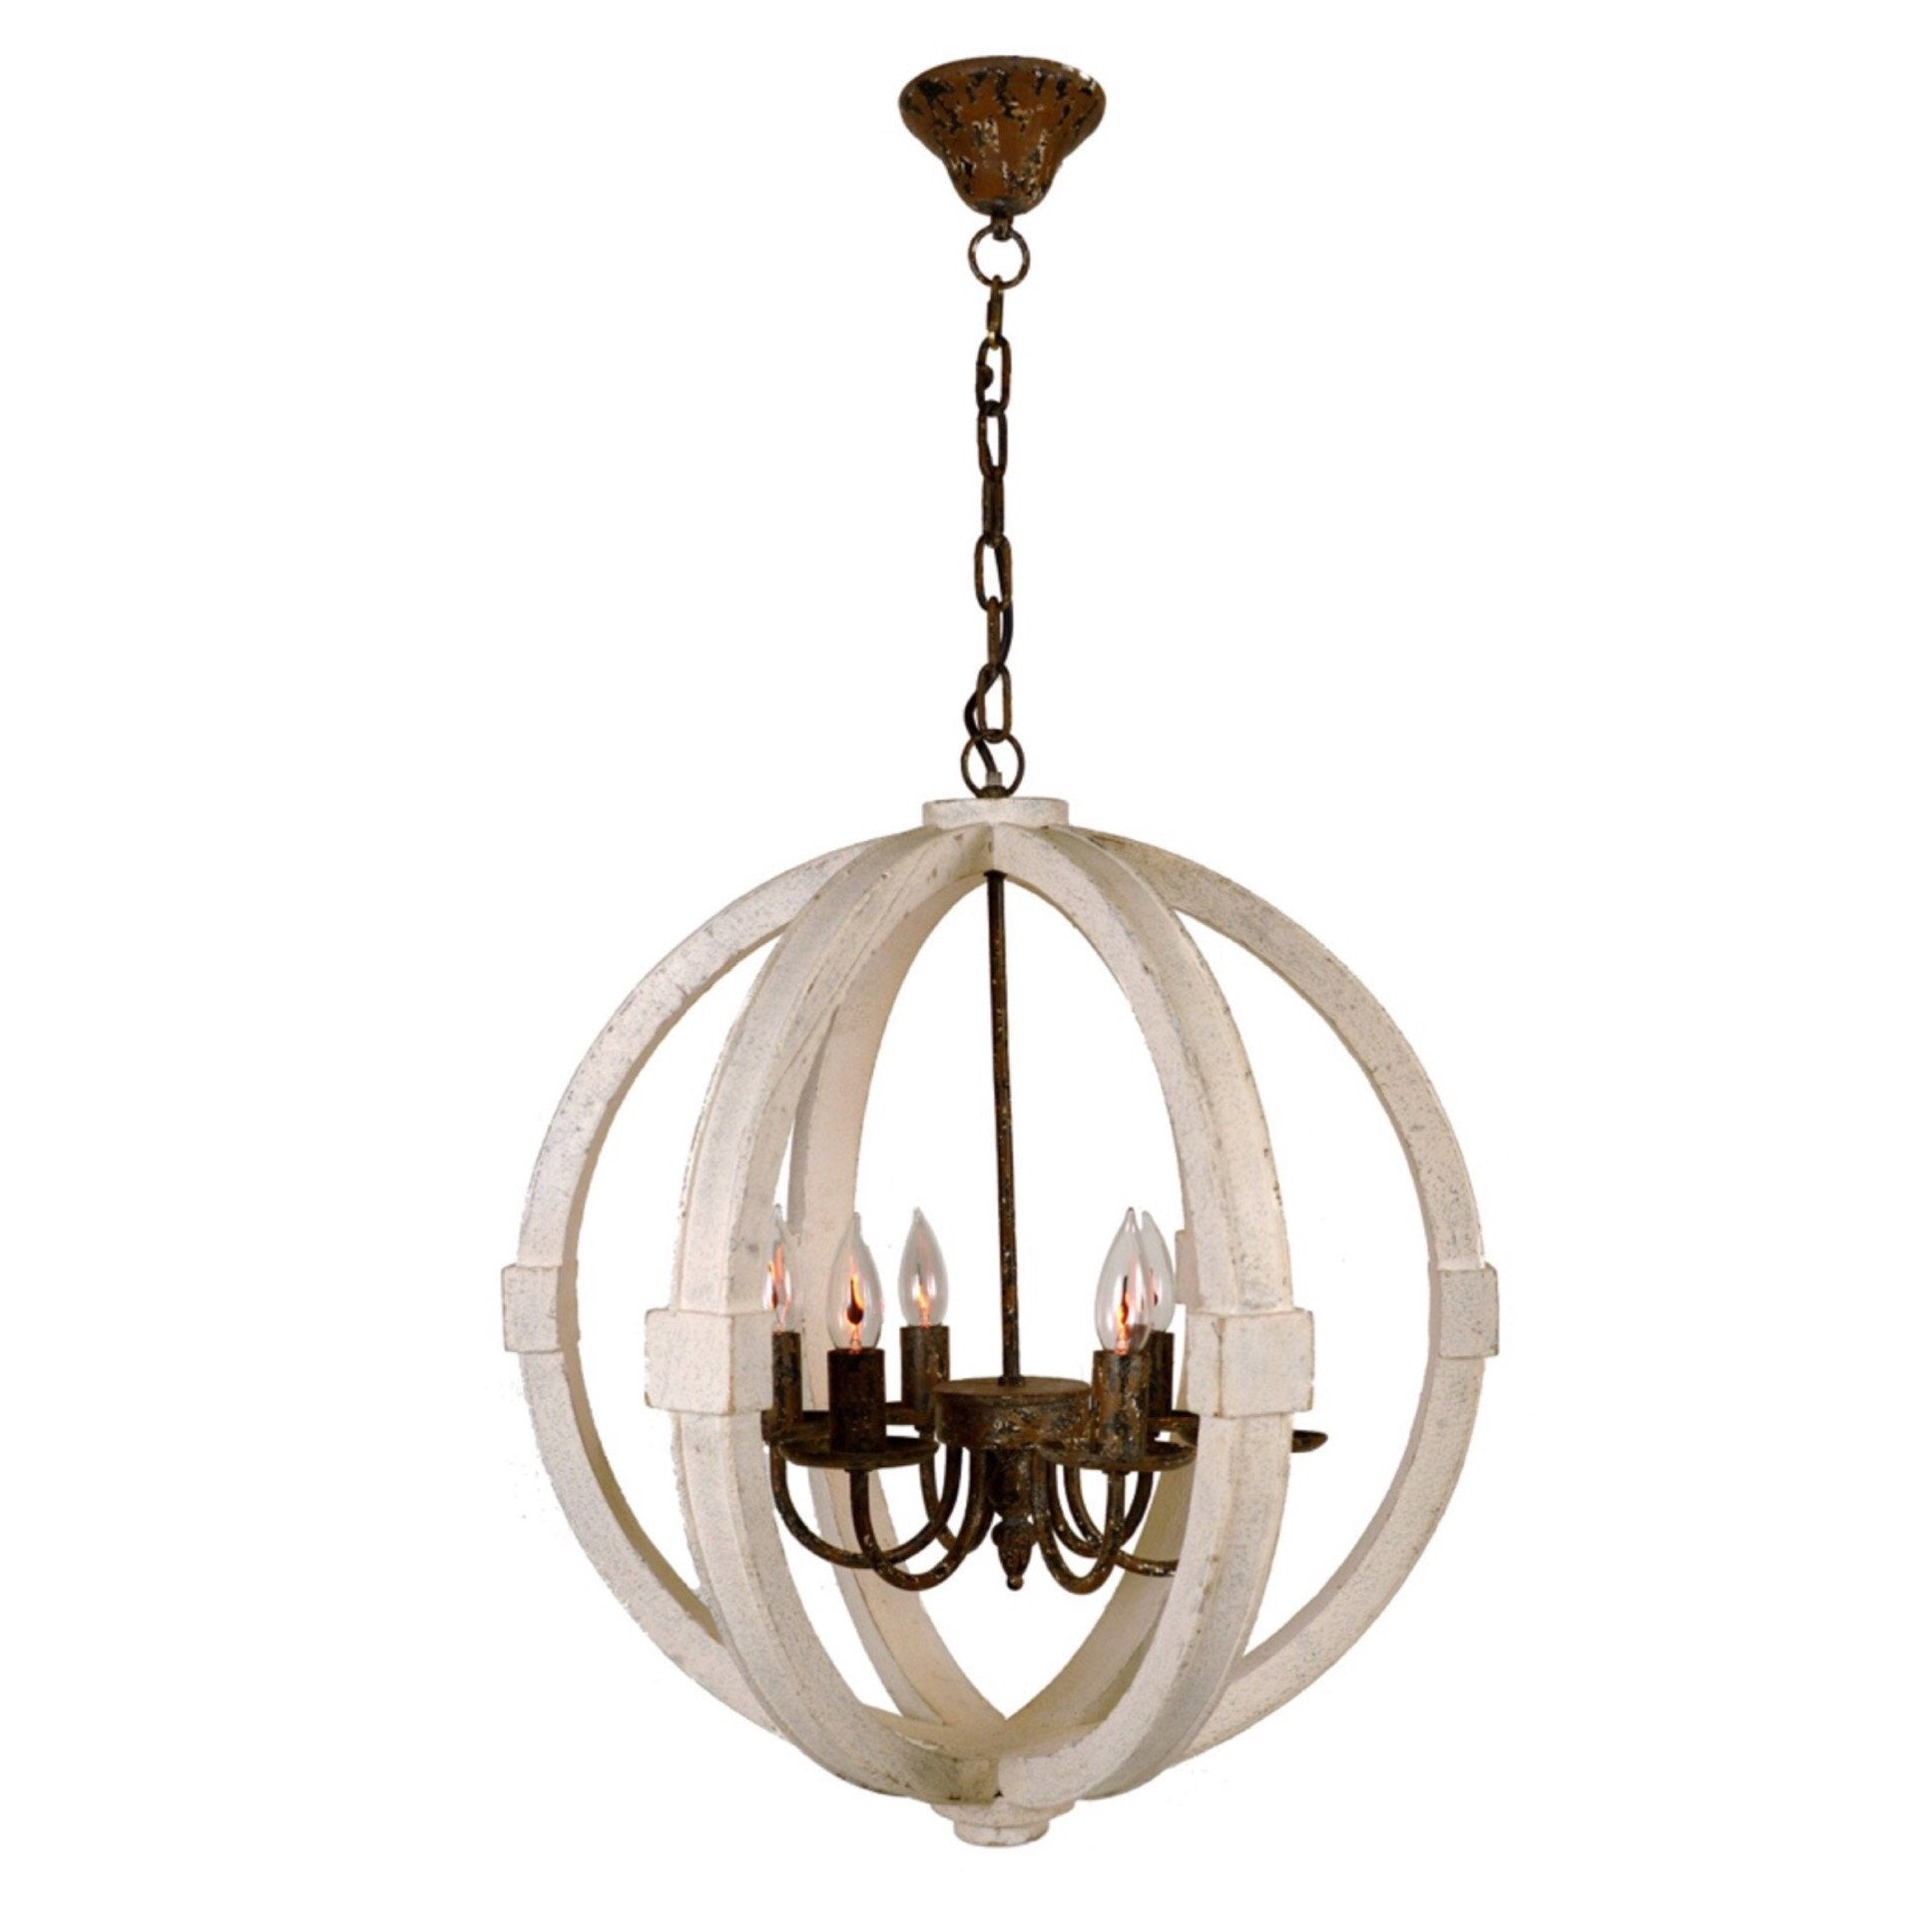 Rustic Orb Chandelier – Sarah Virginia Home